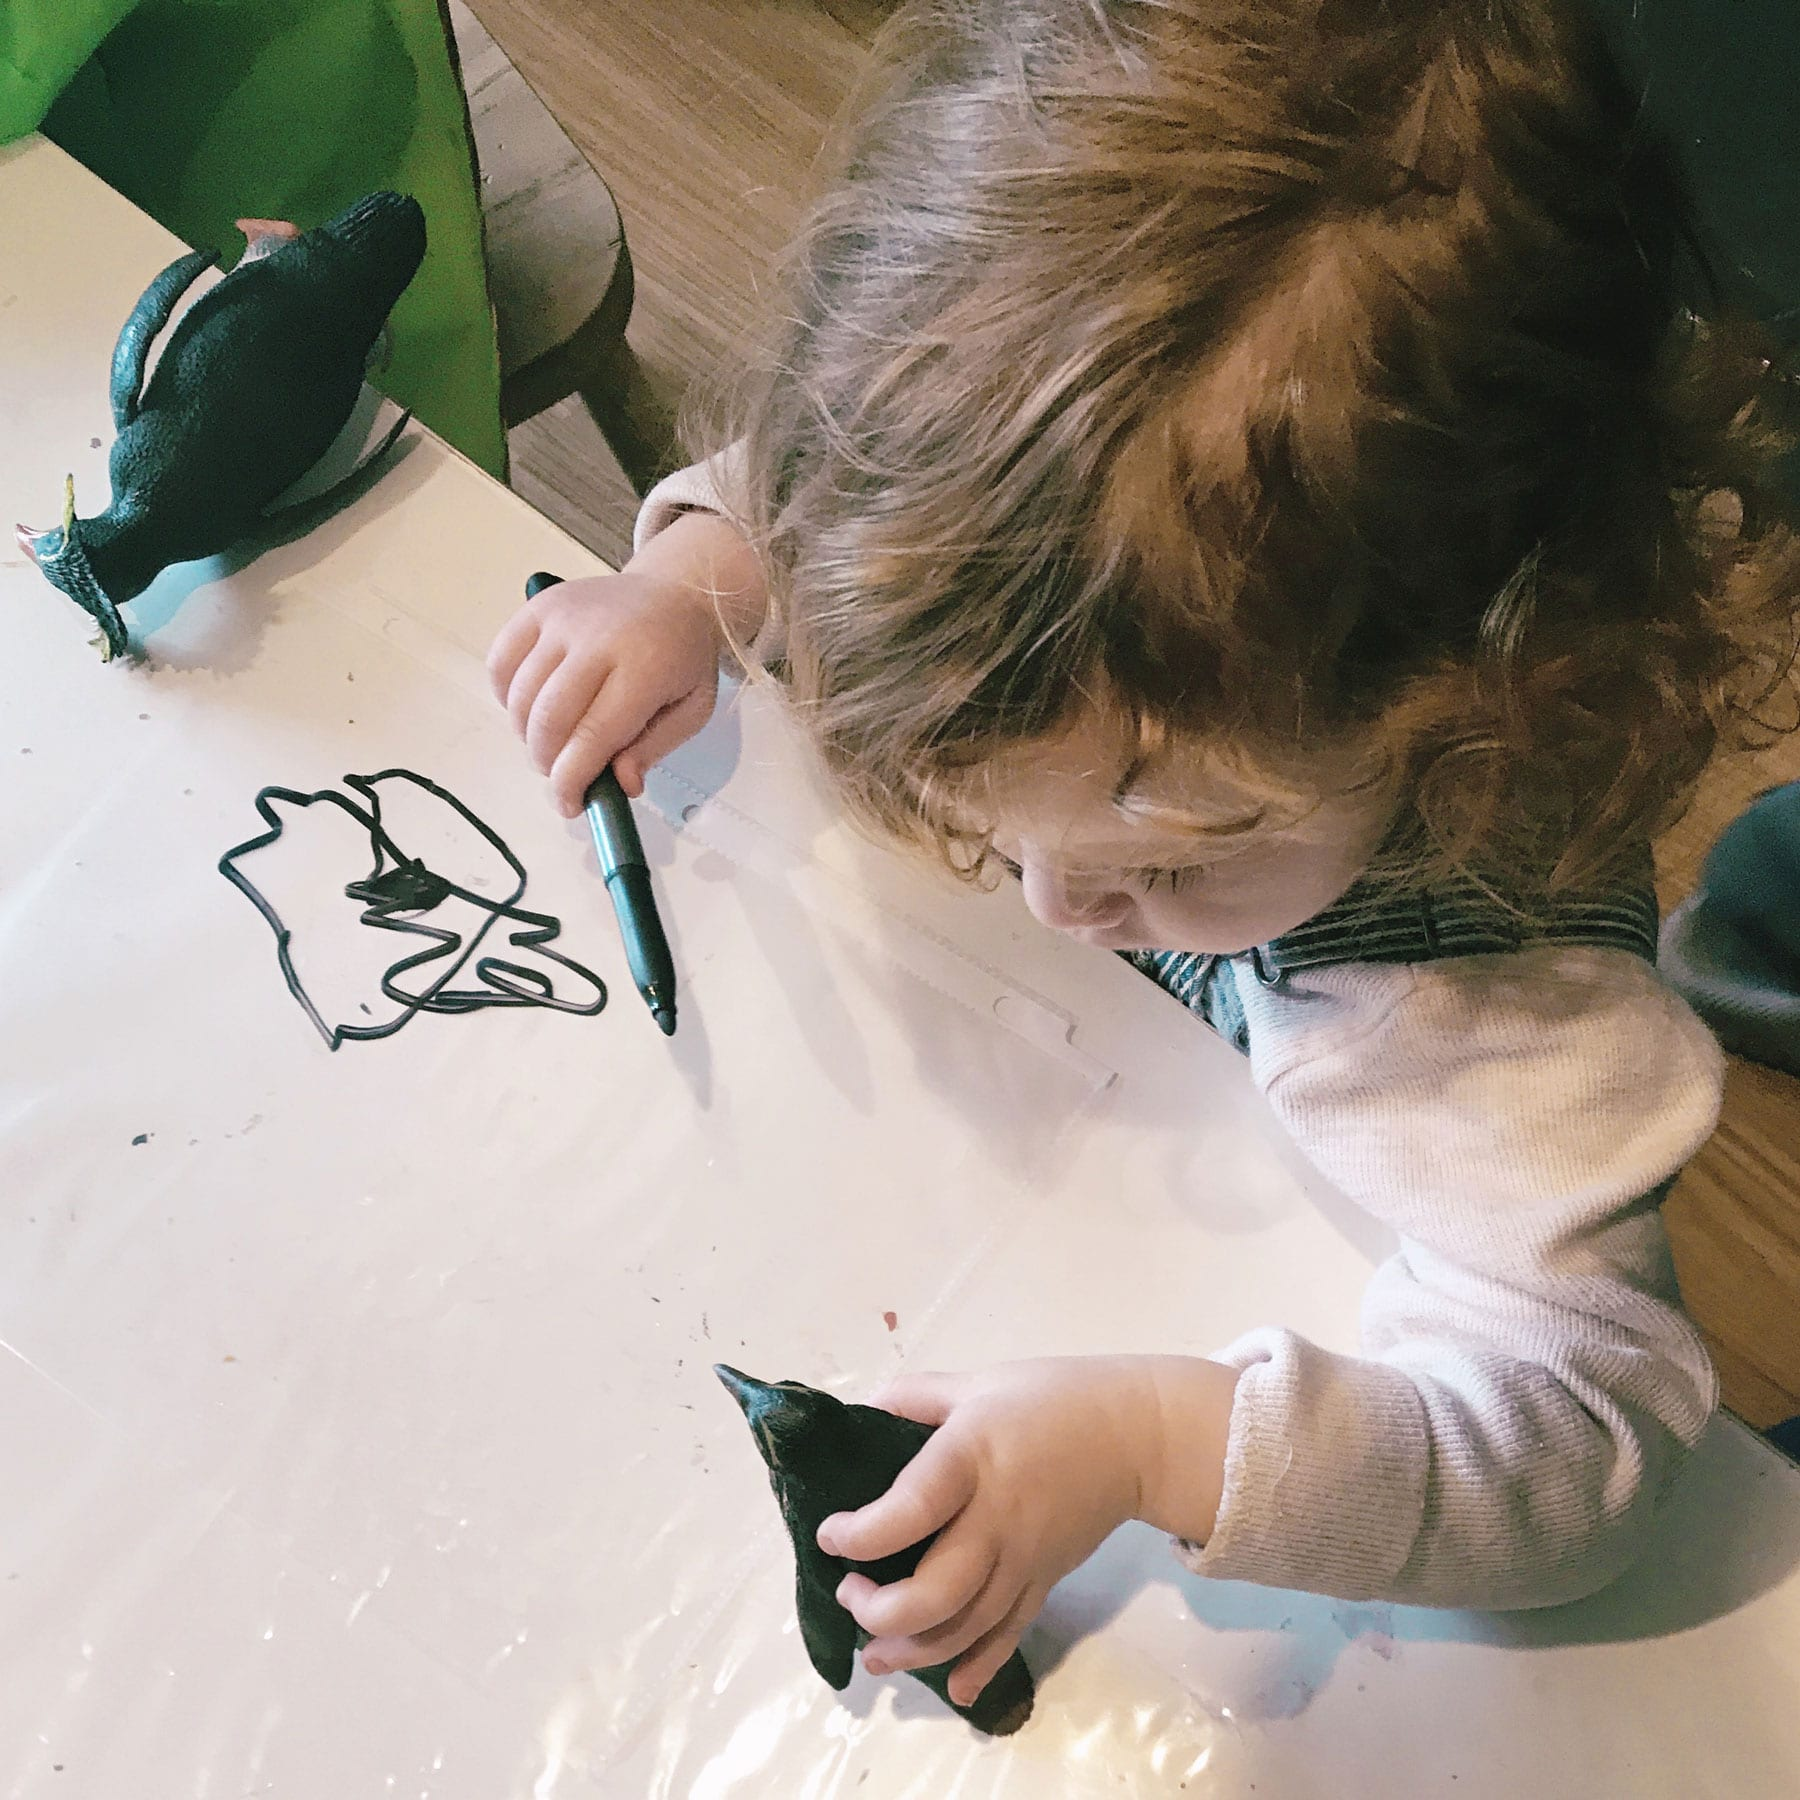 a toddler draws with a marker while holding a penguin toy at Scuola Creativa